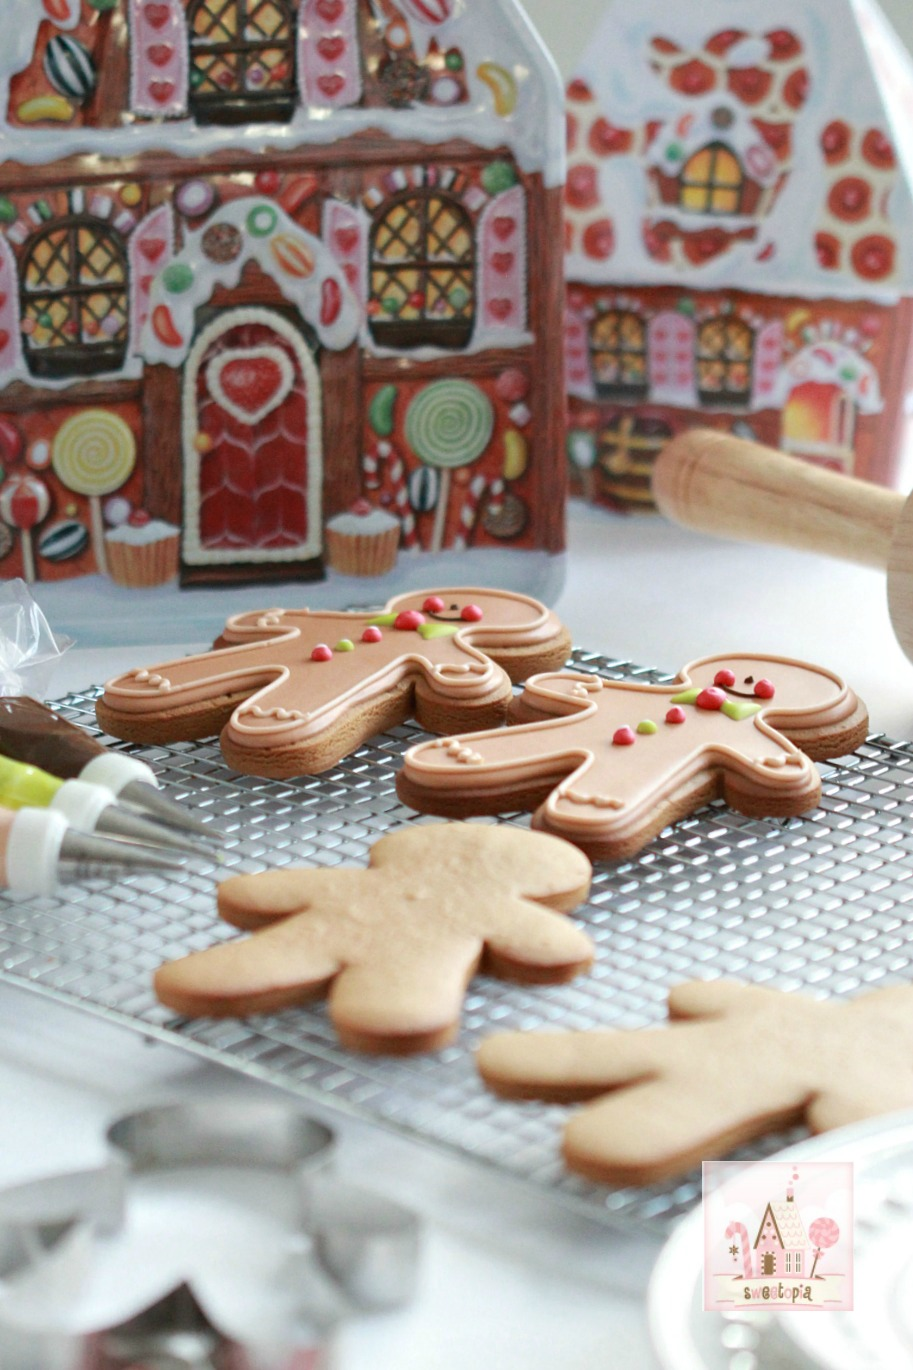 decorating-gingerbread-cookies-_-sweetopia